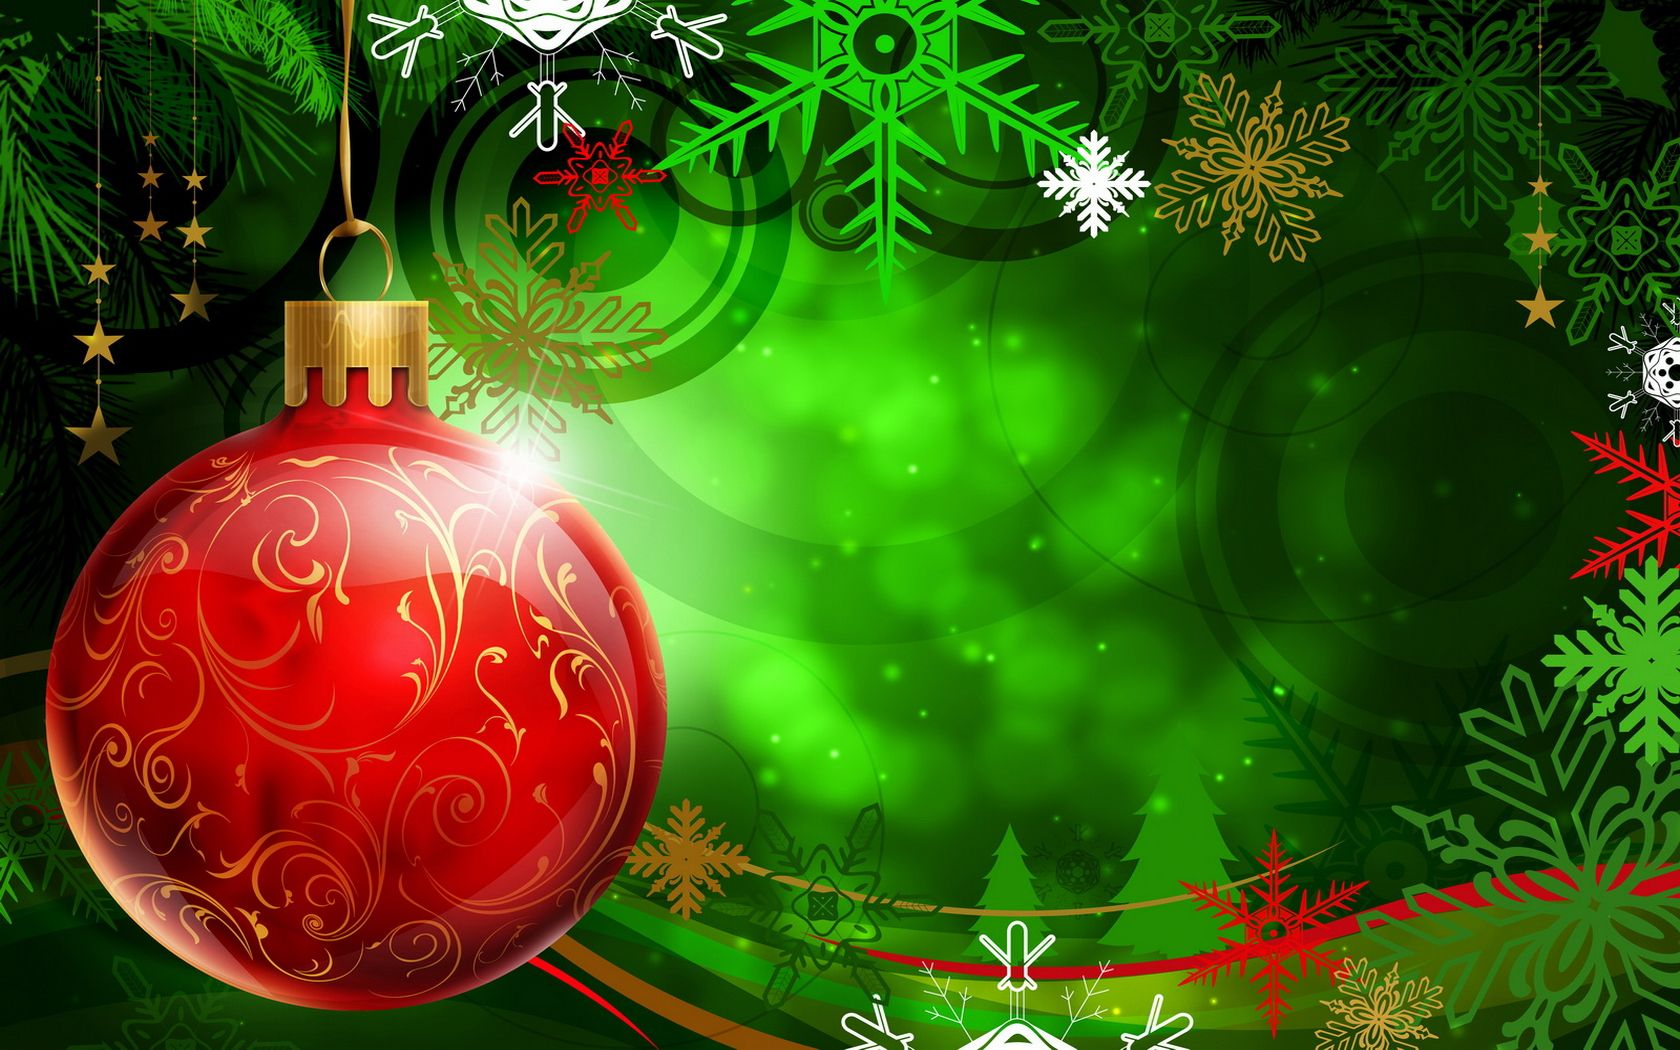 free christian christmas wallpaper for laptop computer | 3d